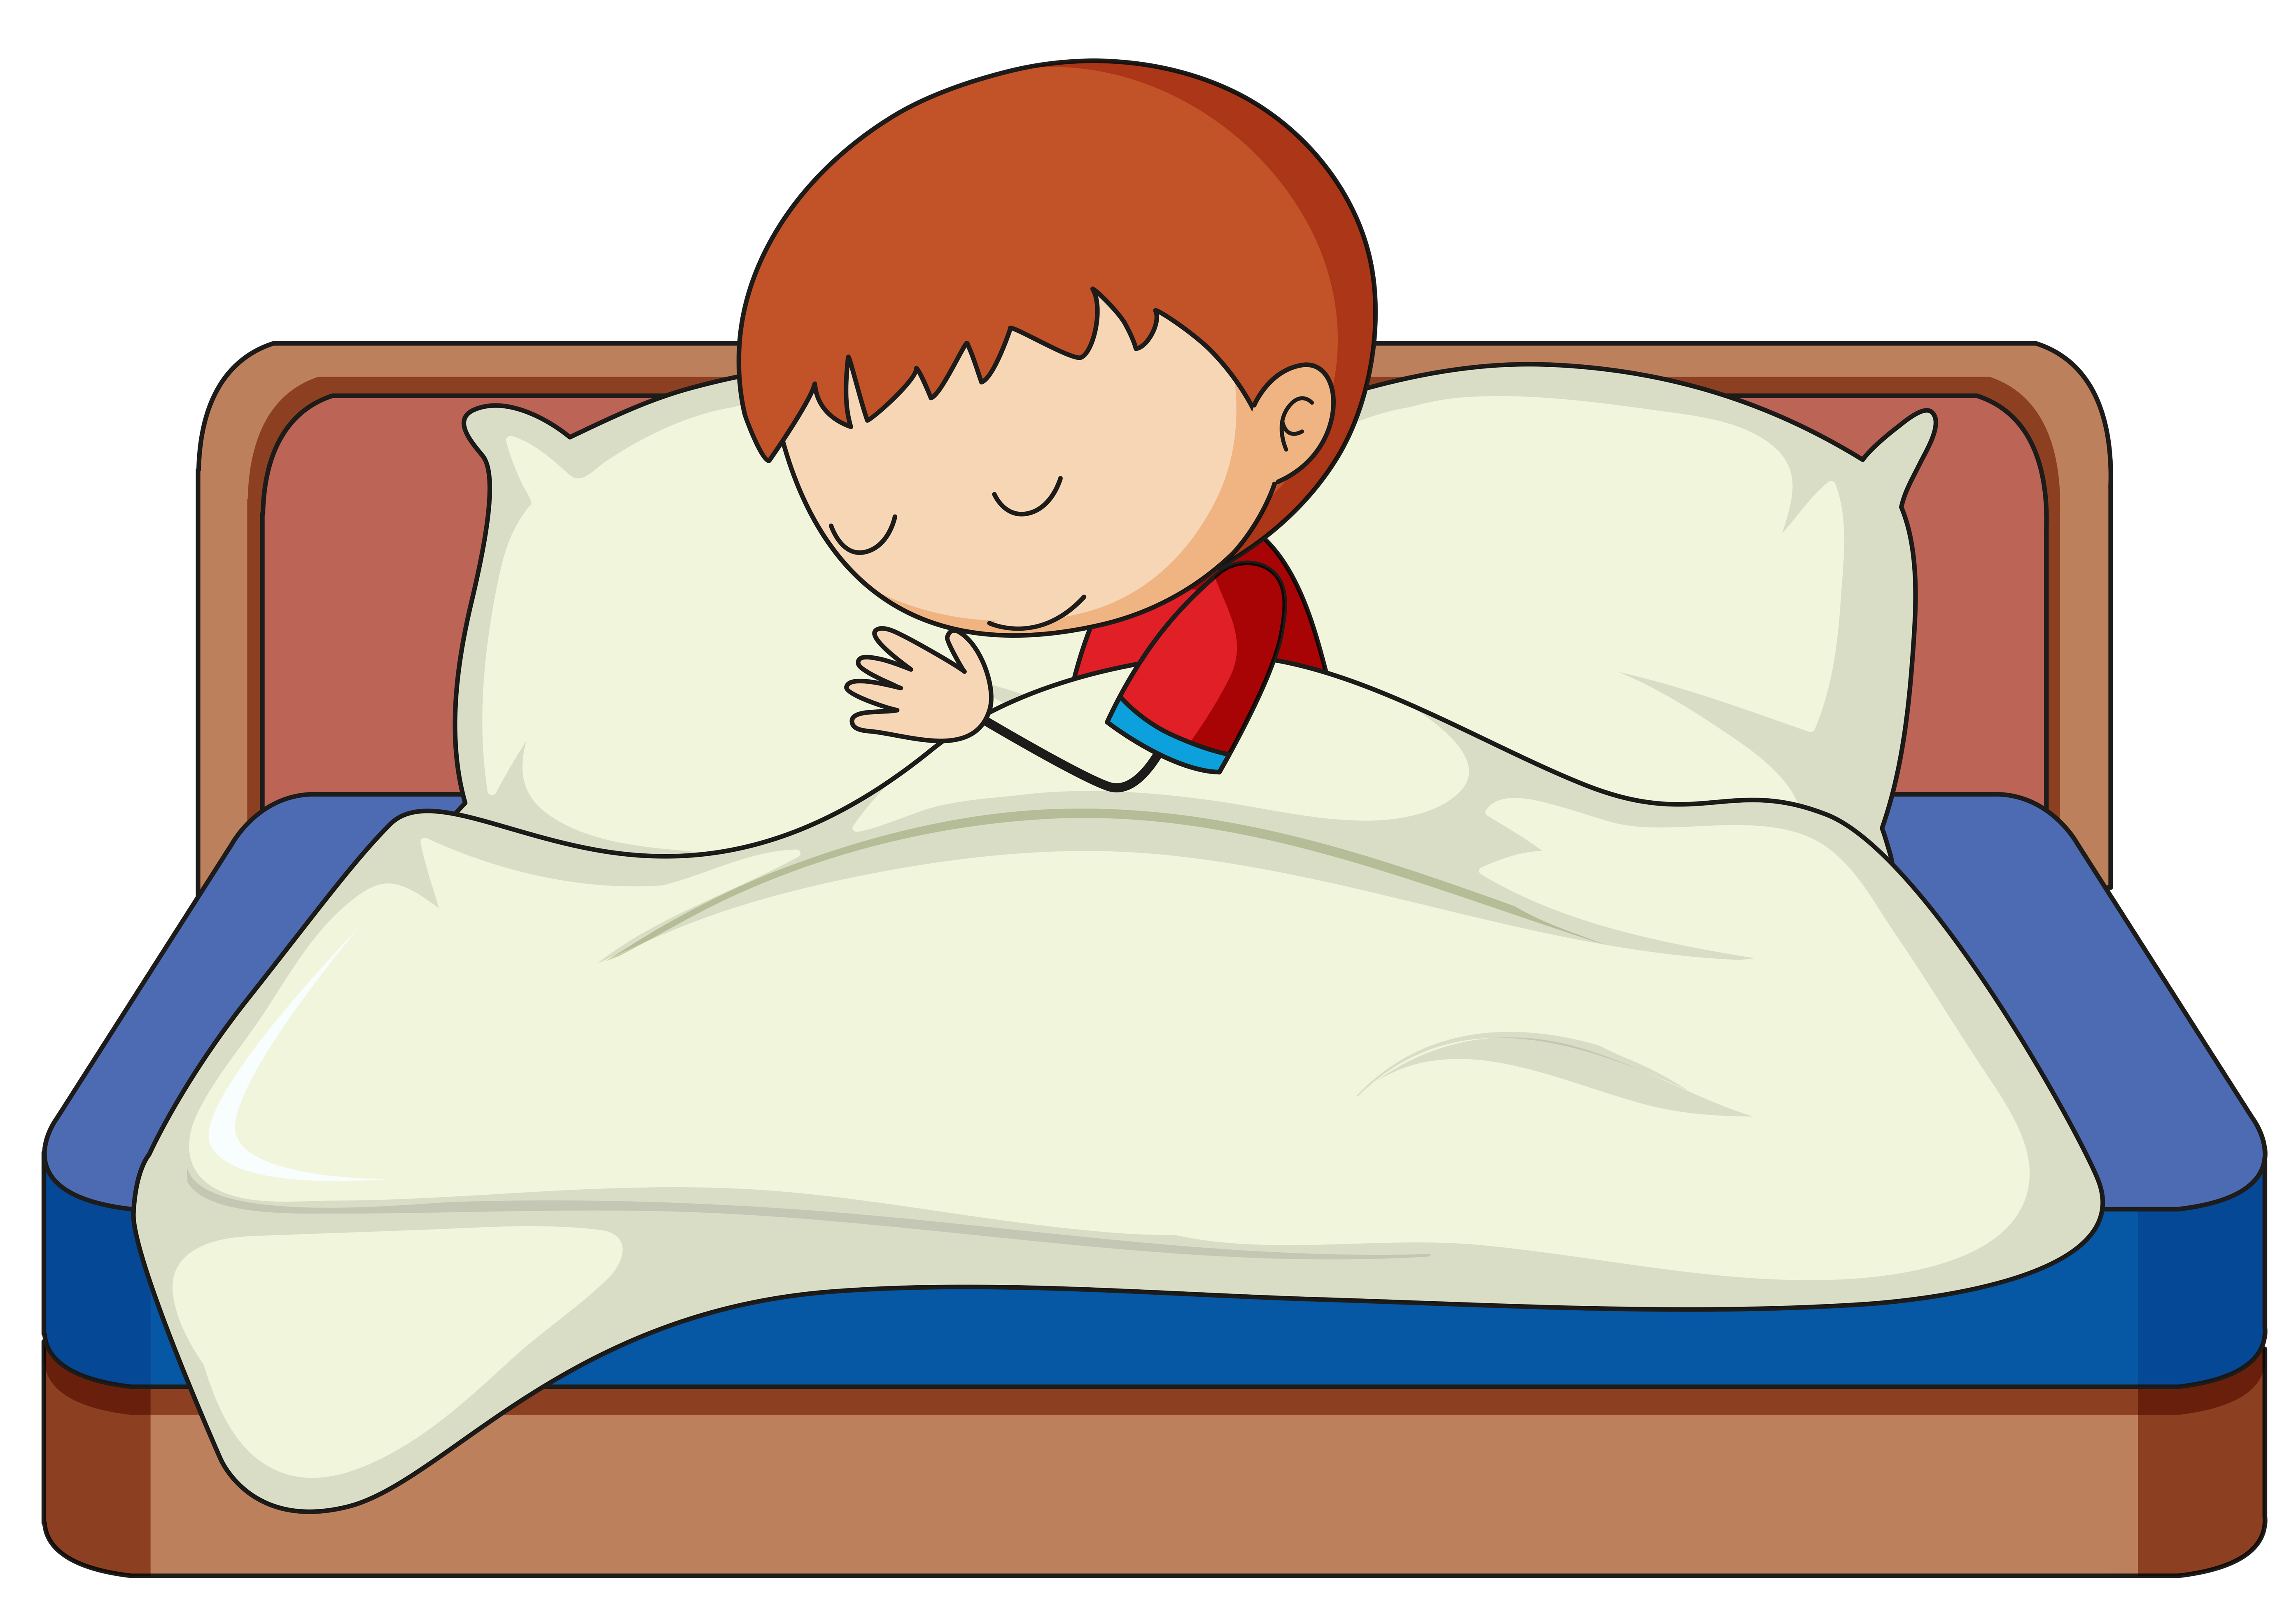 A boy sleeping on the bed - Download Free Vectors, Clipart